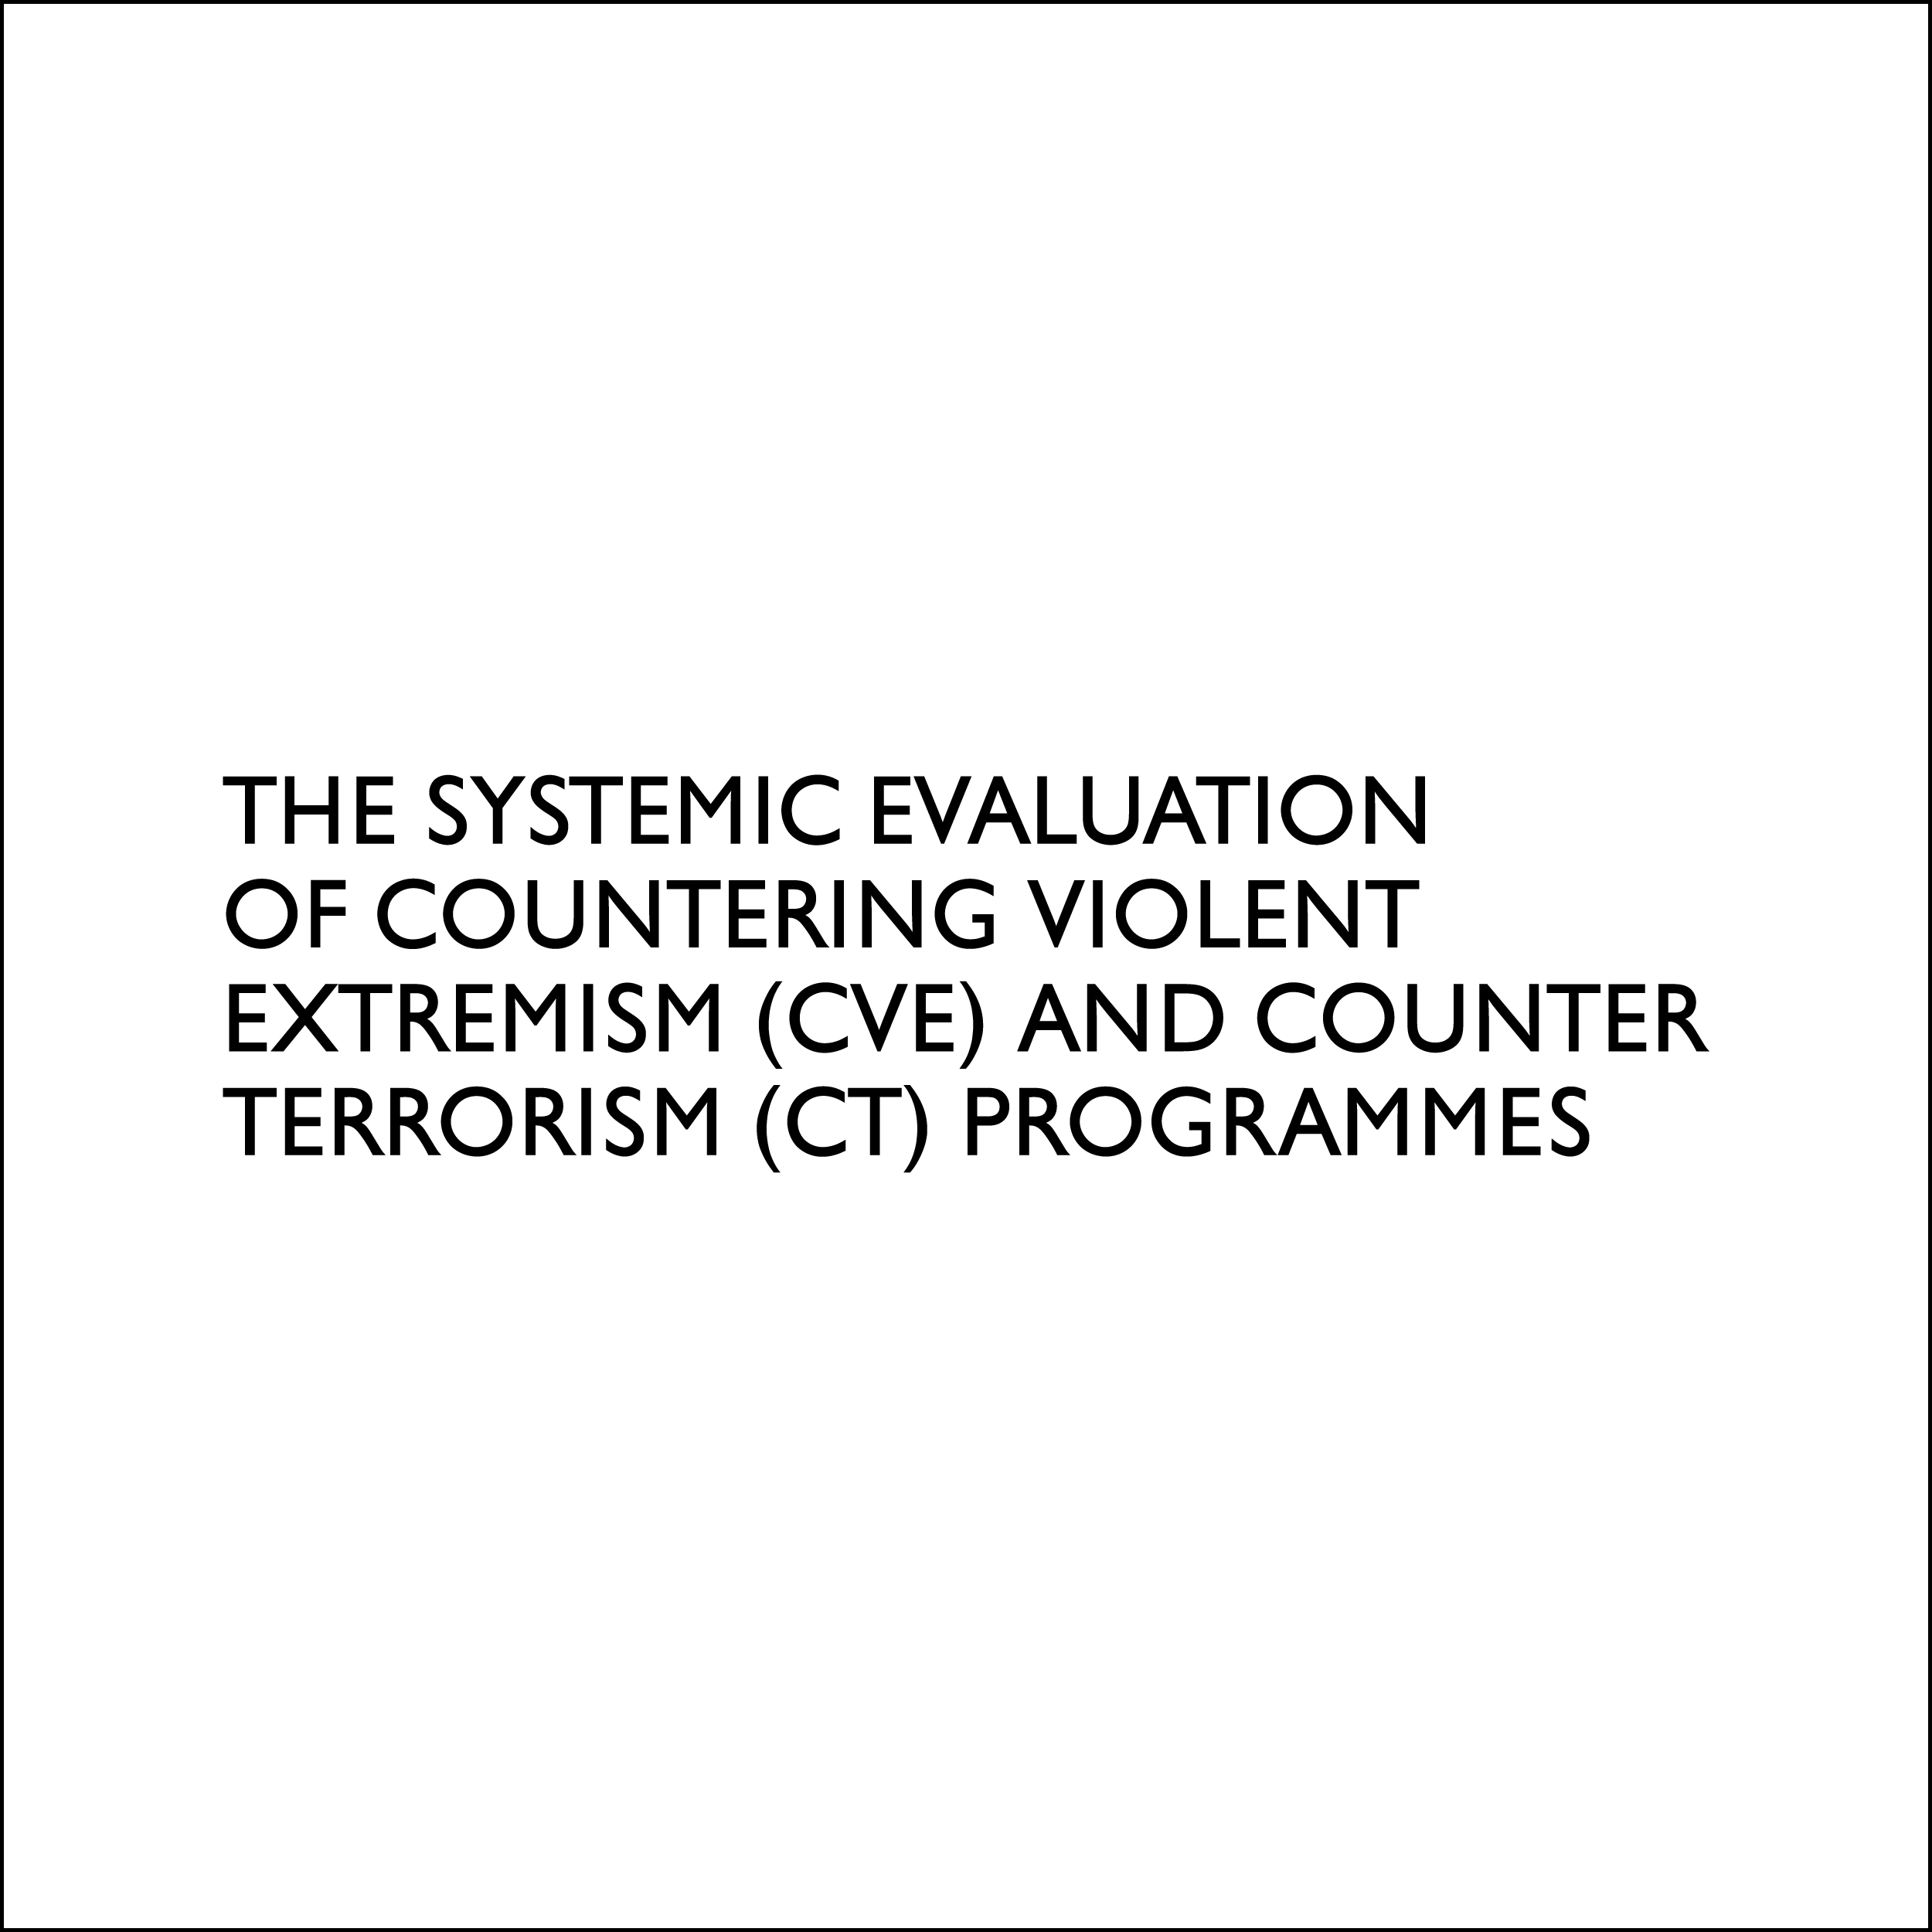 The Systemic Evaluation of Countering Violent Extremism (CVE) and Counter Terrorism (CT) Programmes | journal publication